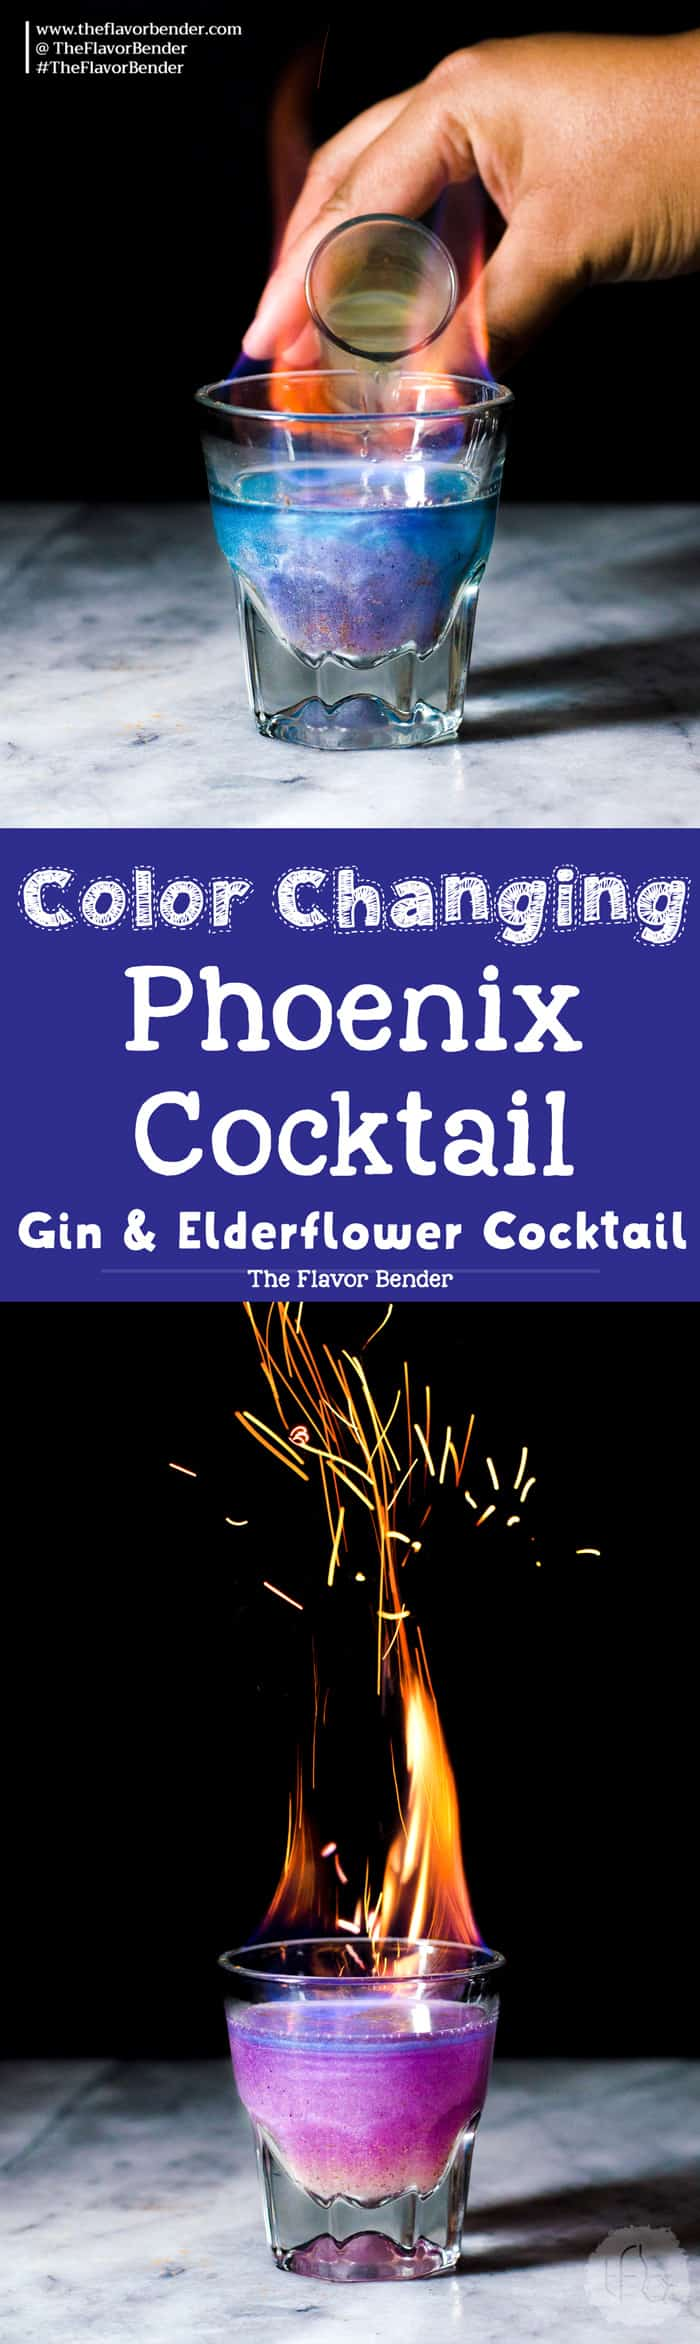 Phoenix Cocktail - A Gin and Elderflower Cocktail that is a Color Changing Shimmery Cocktail! Made with Butterfly pea Flower infused gin and a fruity, tangy, floral and sweet lemon Elderflower syrup.